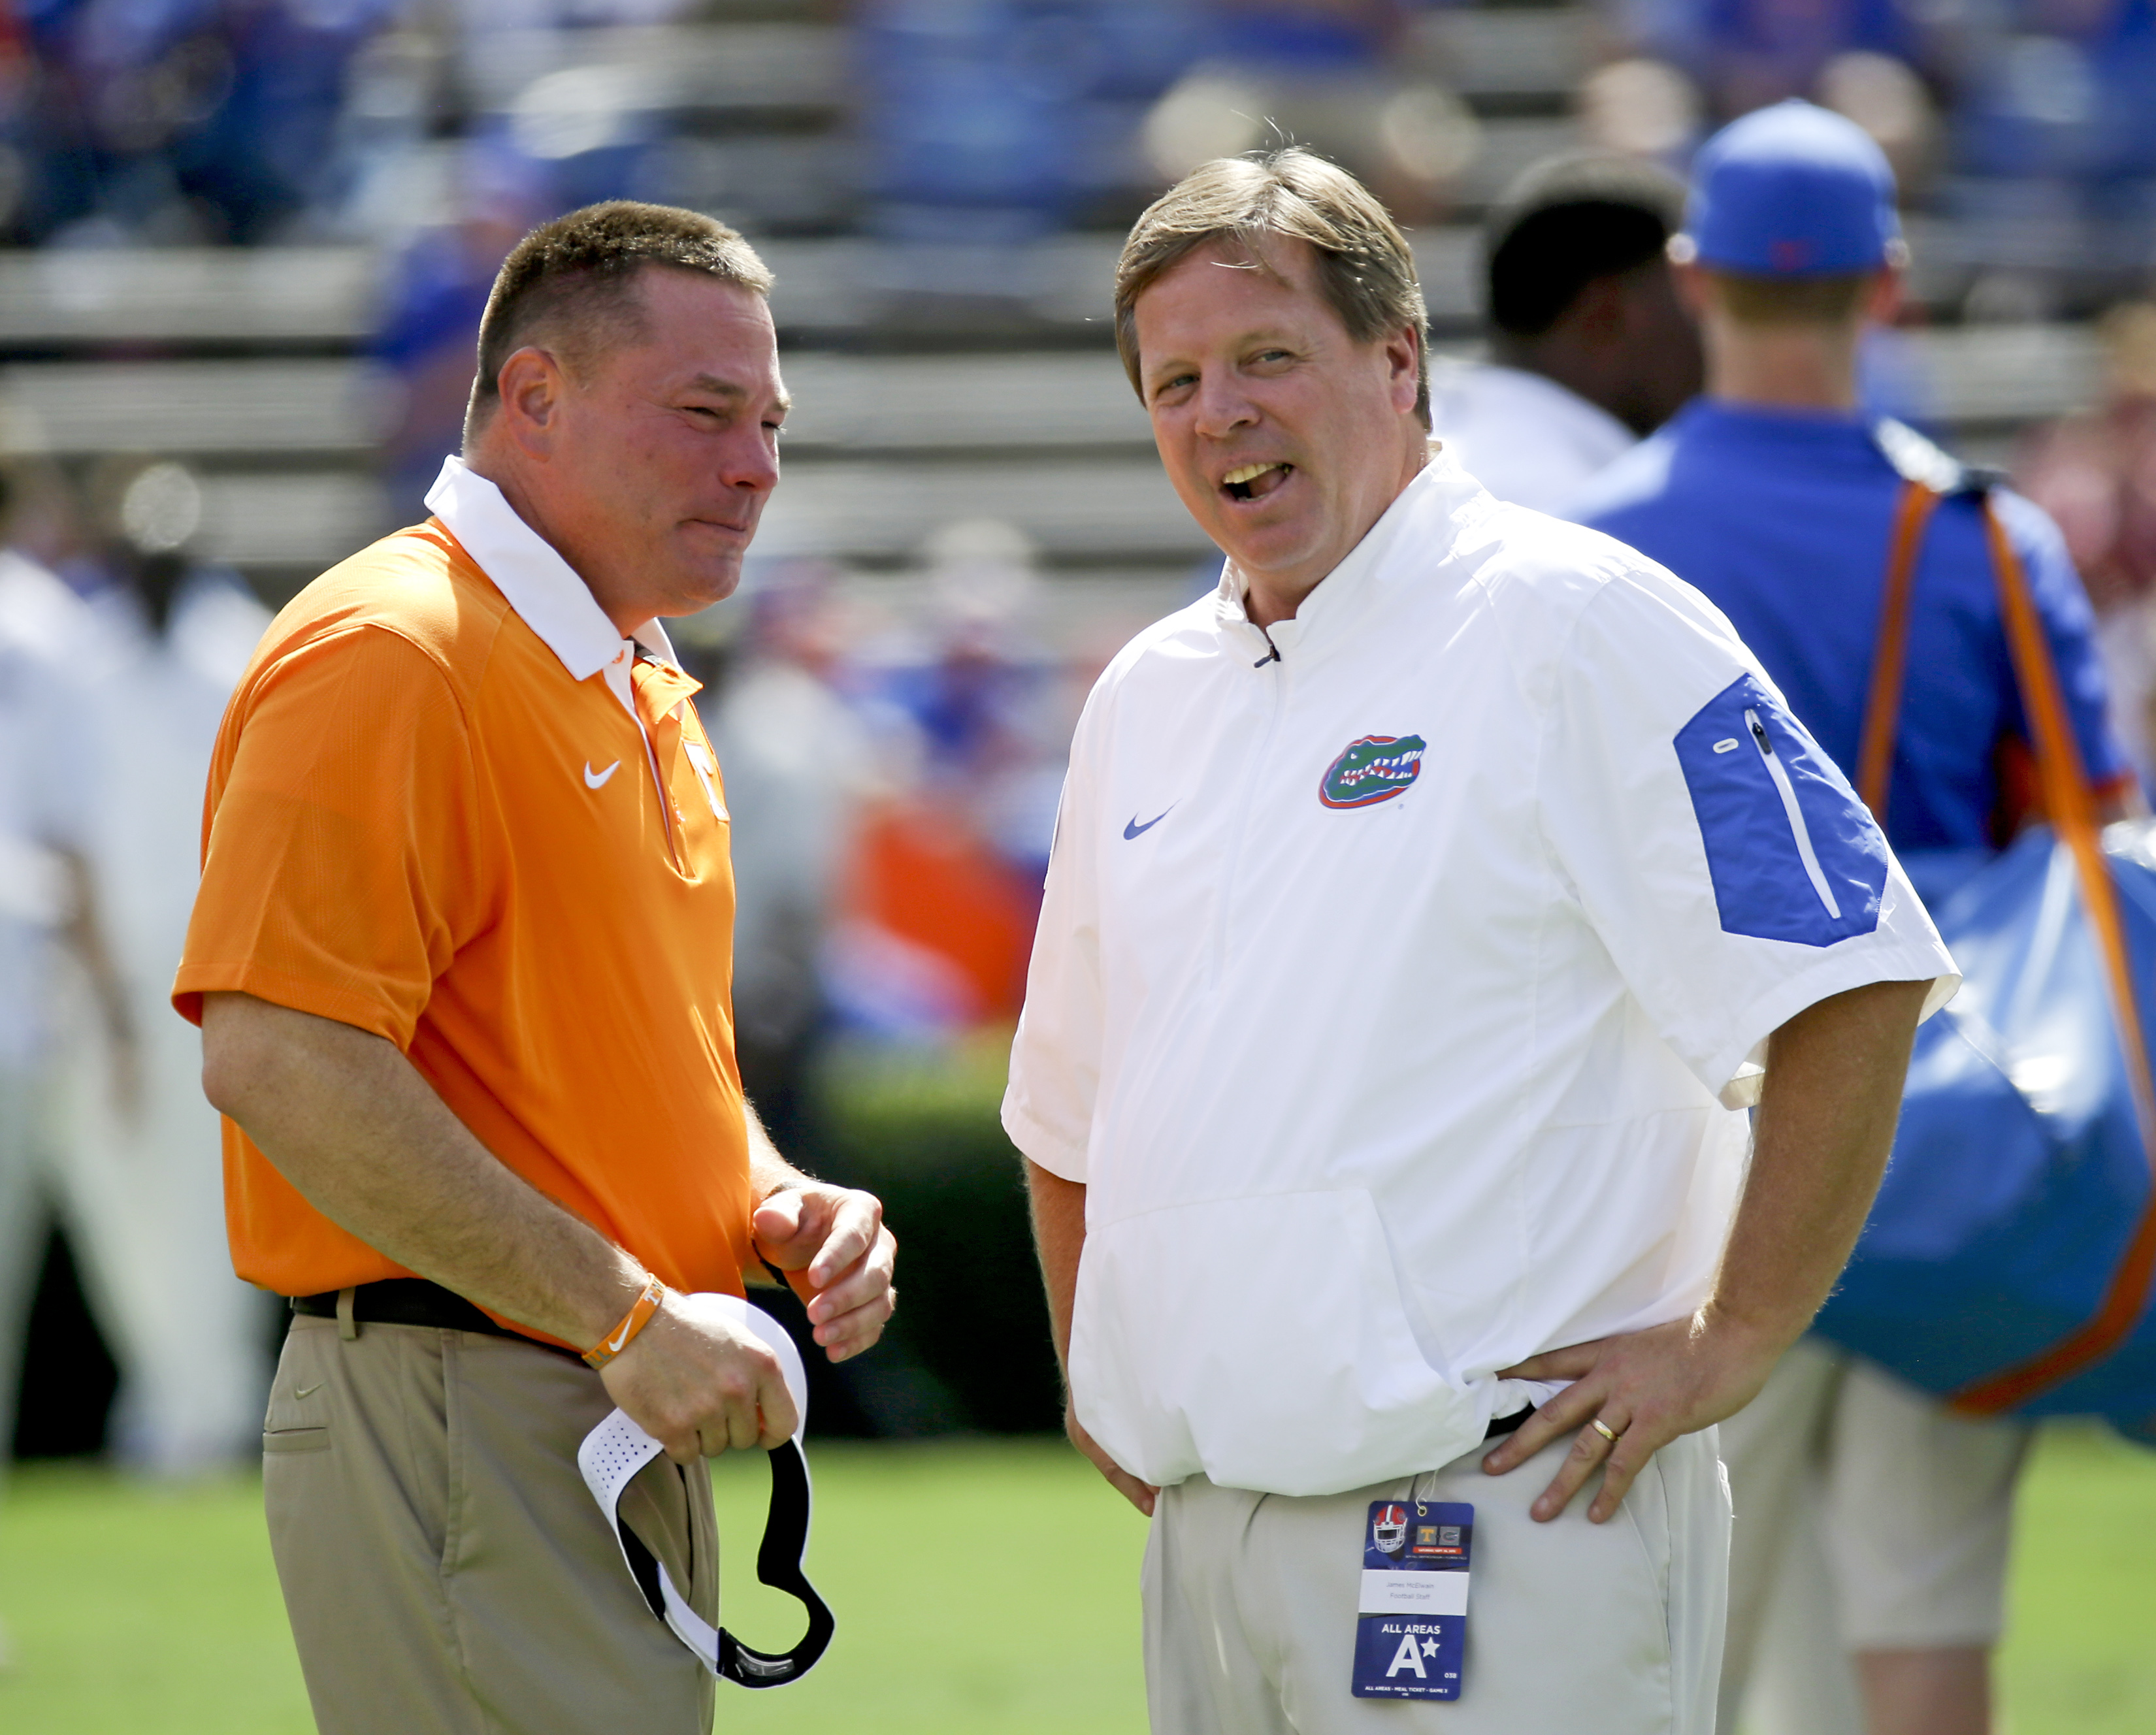 Tennessee head coach Butch Jones, left, and Florida head coach Jim McElwain chat at midfield before an NCAA college football game, Saturday, Sept. 26, 2015, in Gainesville, Fla. (AP Photo/John Raoux)